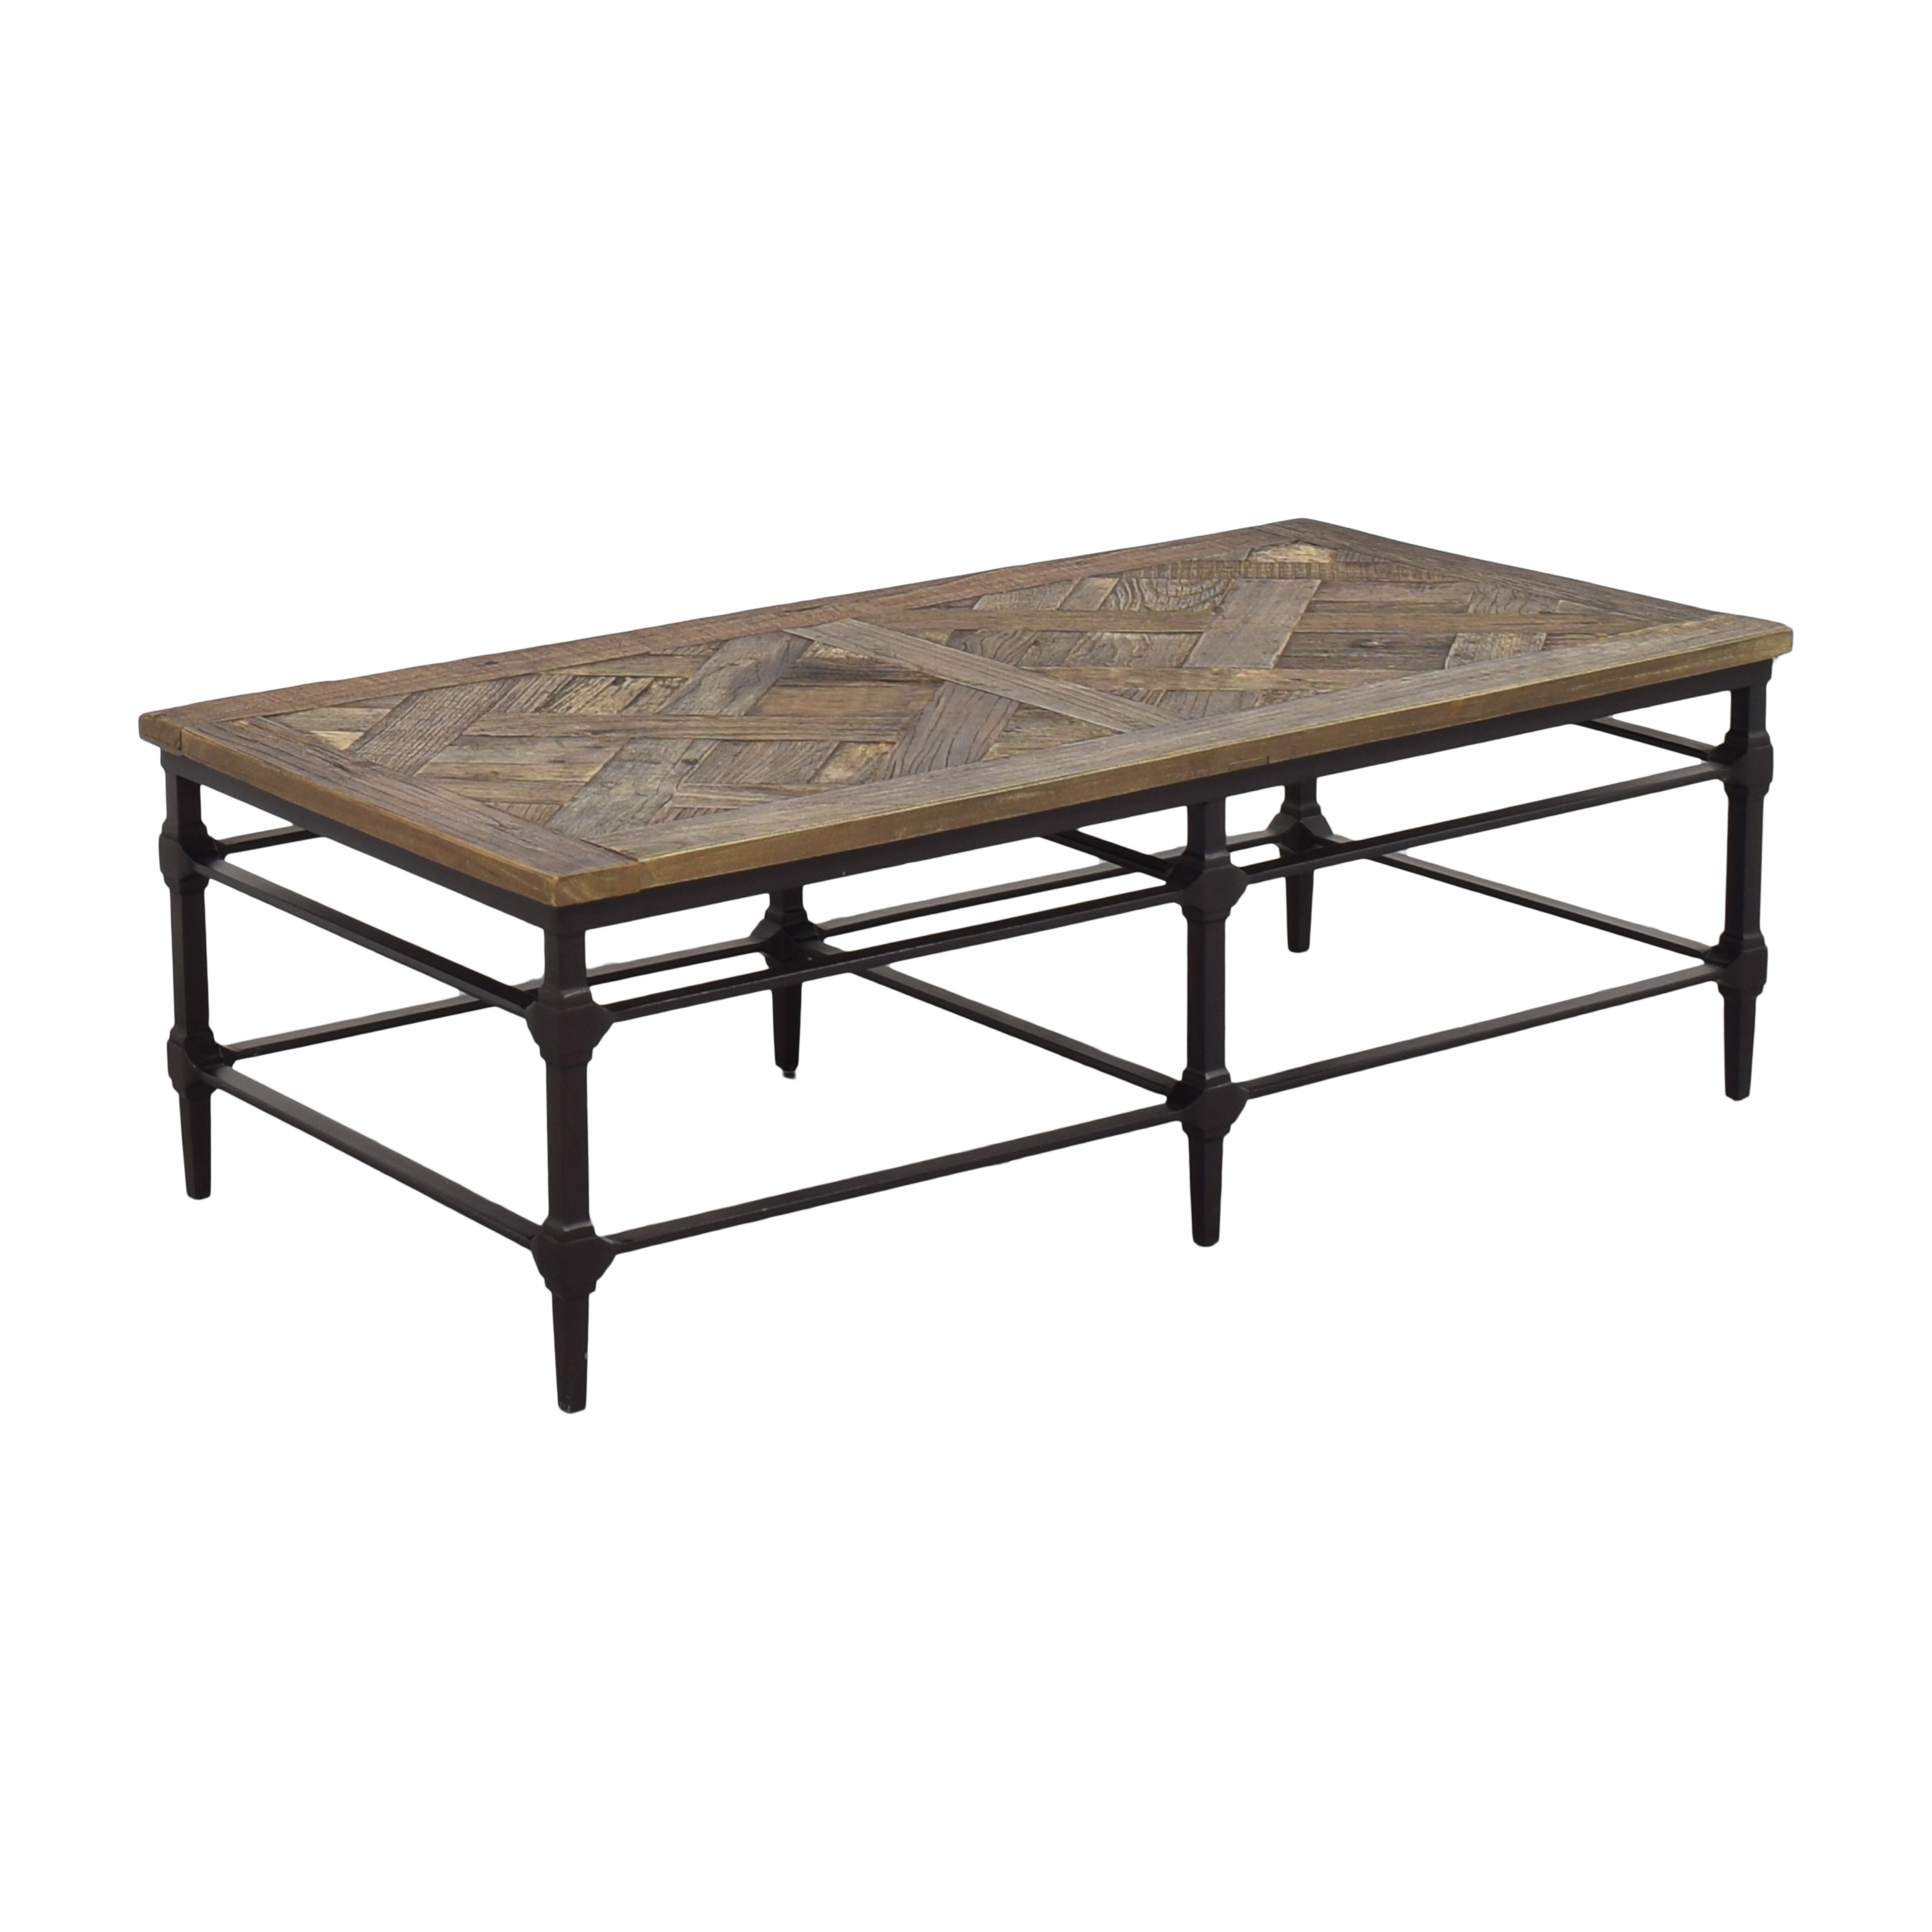 Pottery Barn Pottery Barn Parquet Reclaimed Rectangular Coffee Table price